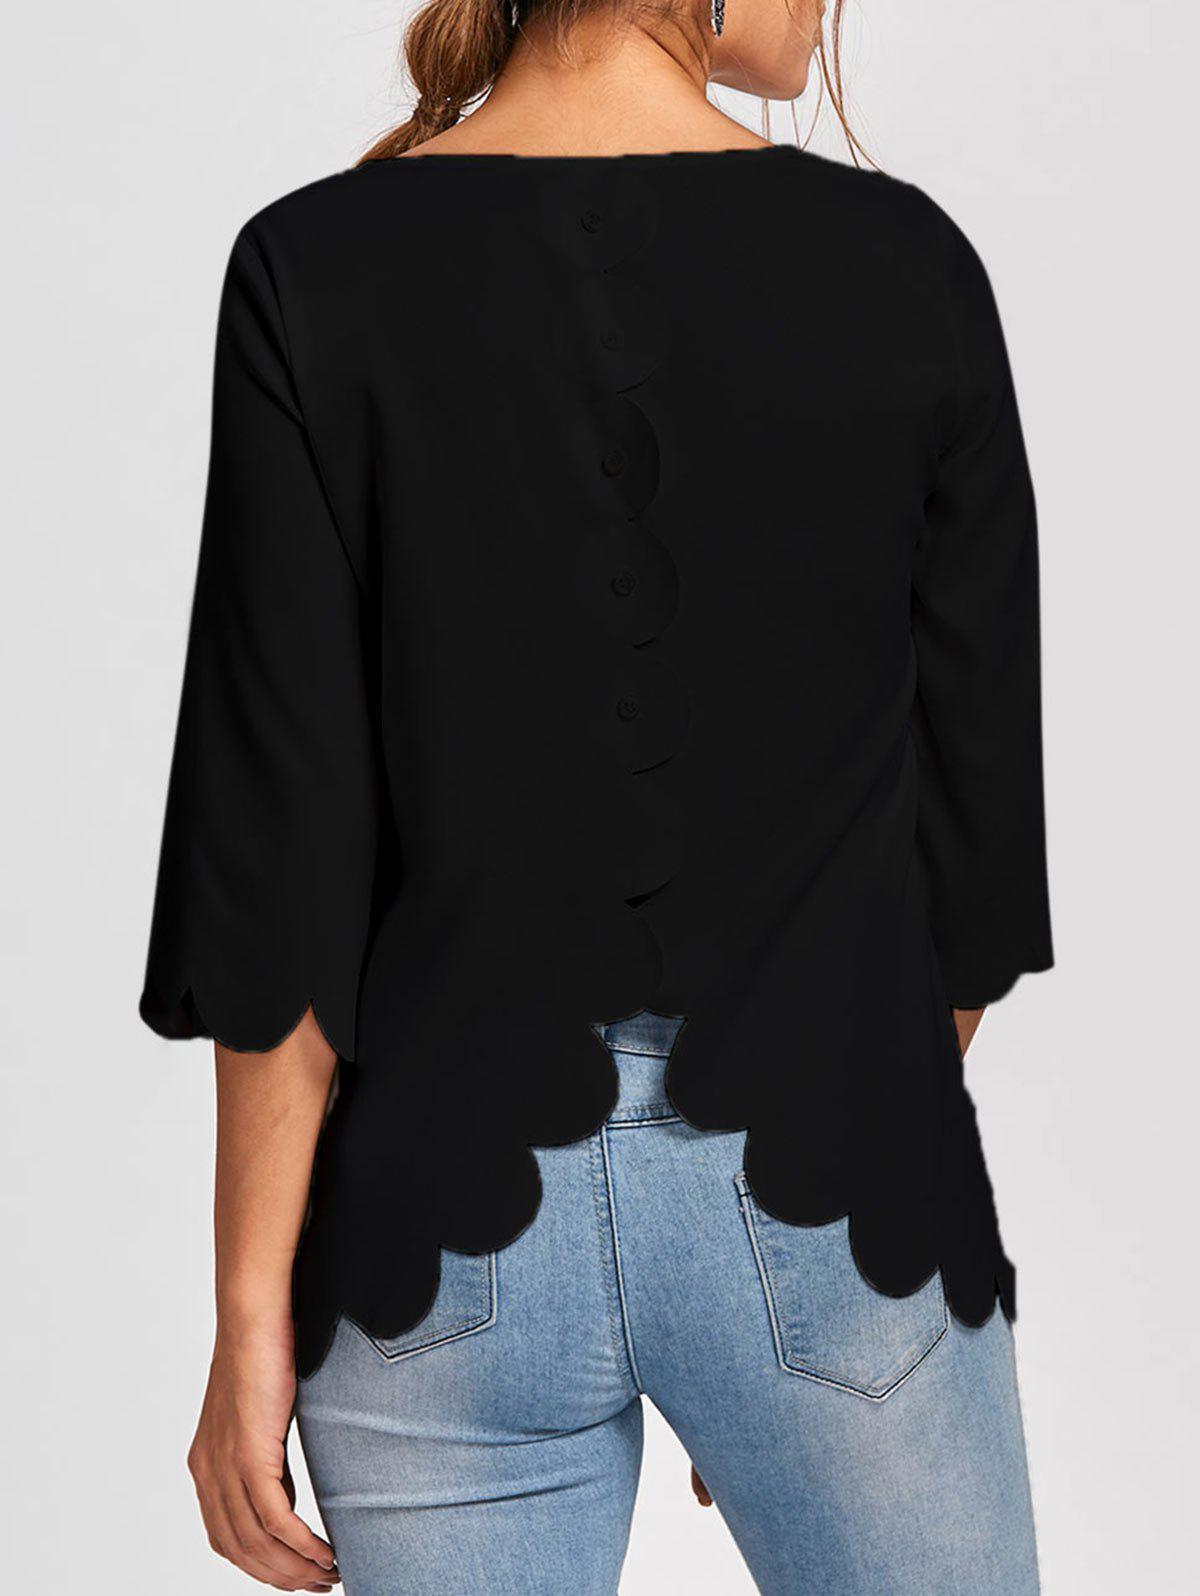 Store Button Embellished Scalloped Edge Blouse